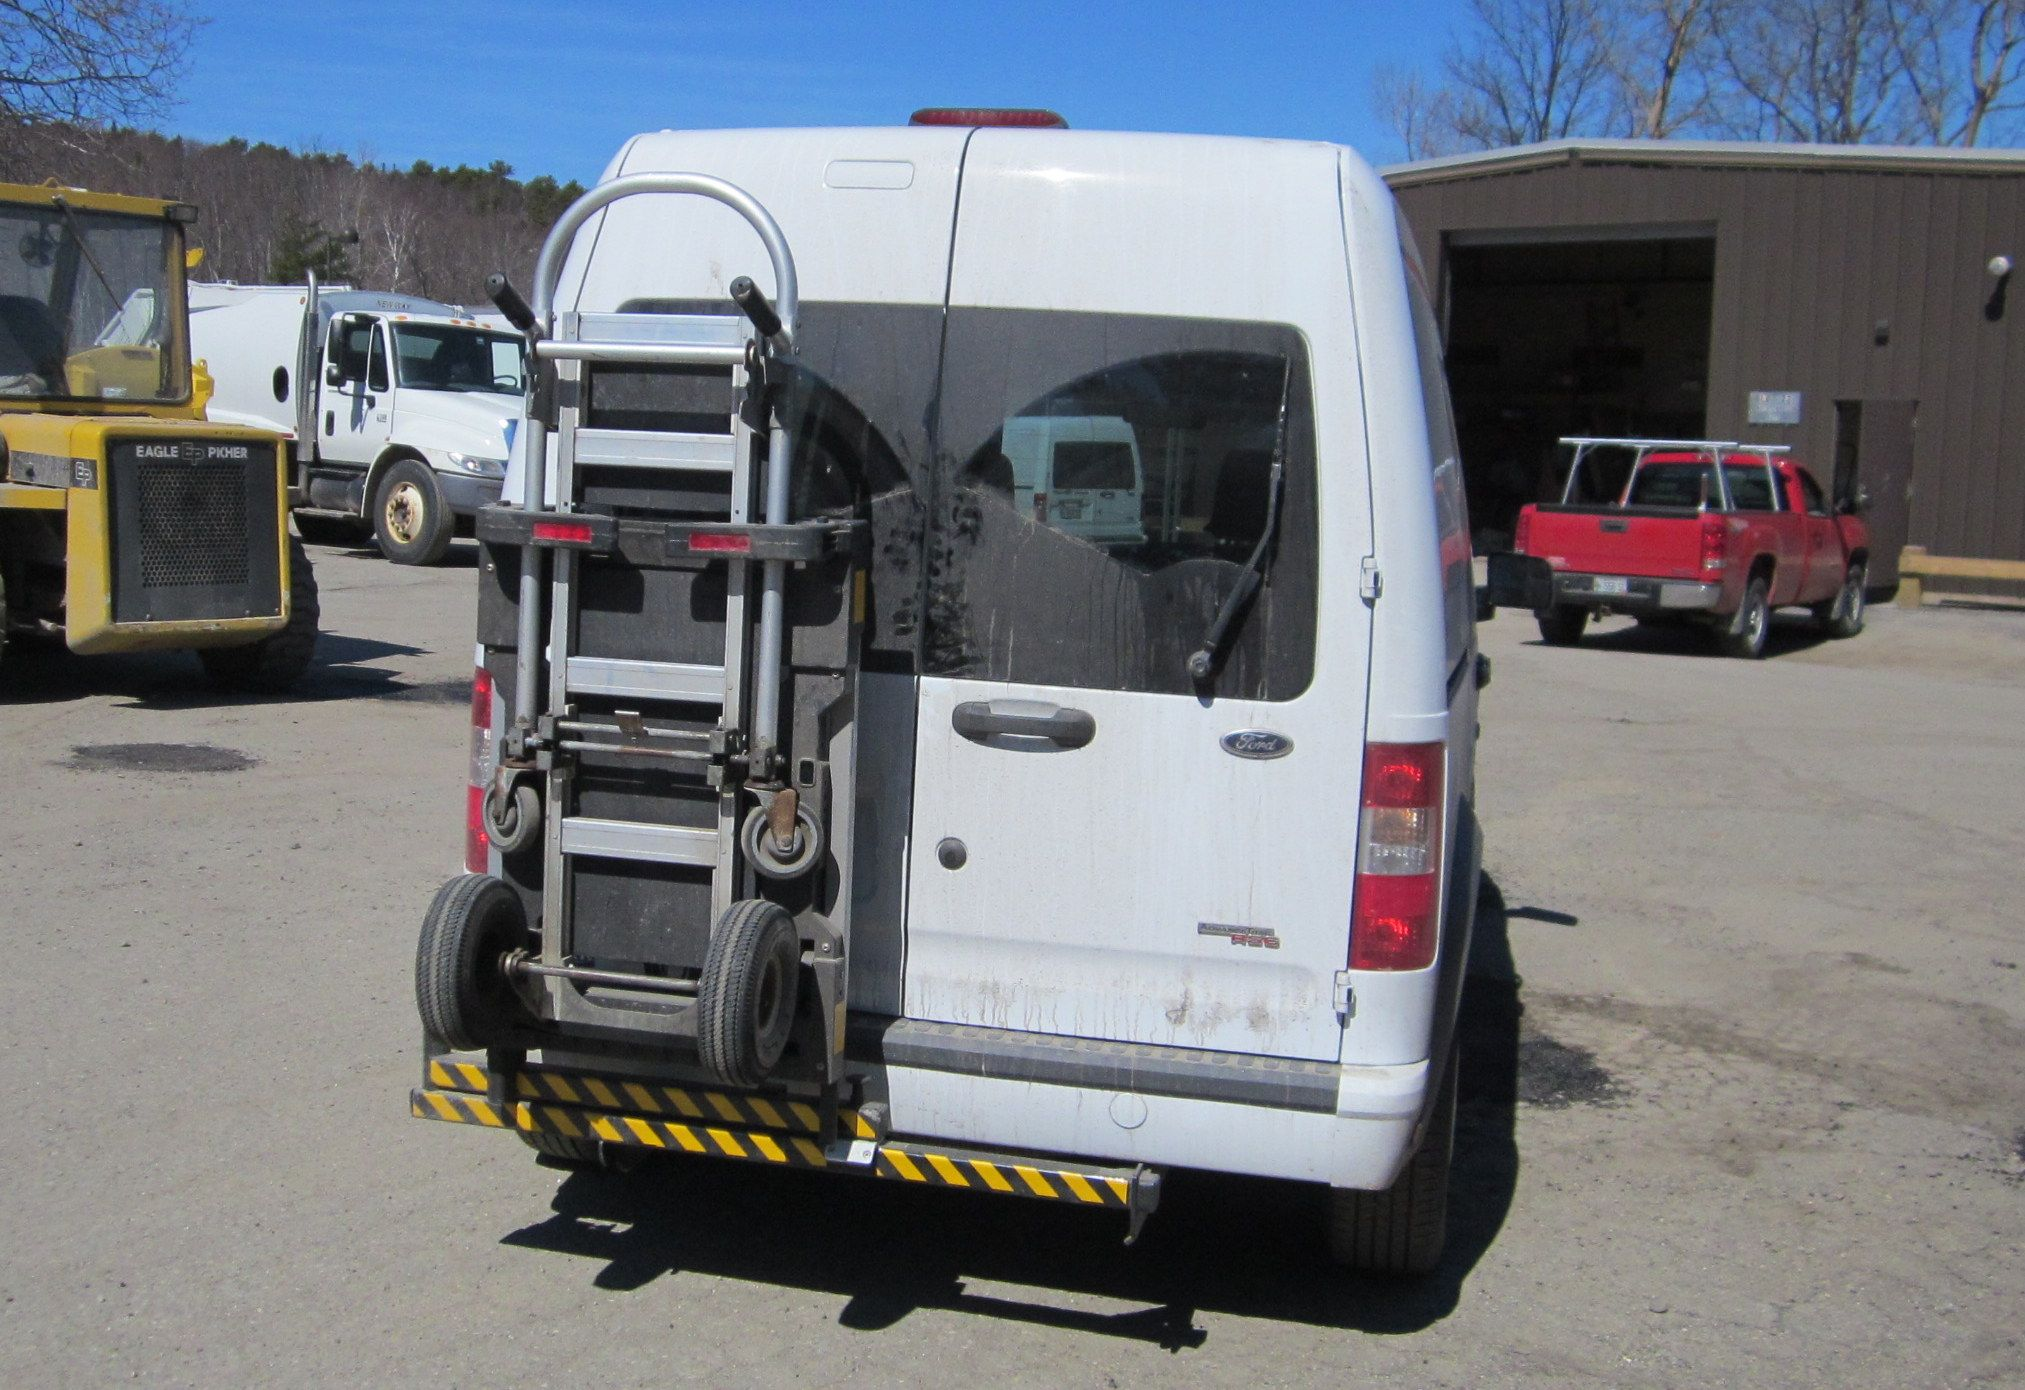 Ford Transit Connect Mini Cargo Van Equipment With Hts Systems Hts 20sft Ultra Rack Unit Wesco Cobra Jr Hand Truck Locked Trucks Hand Trucks Truck Transport